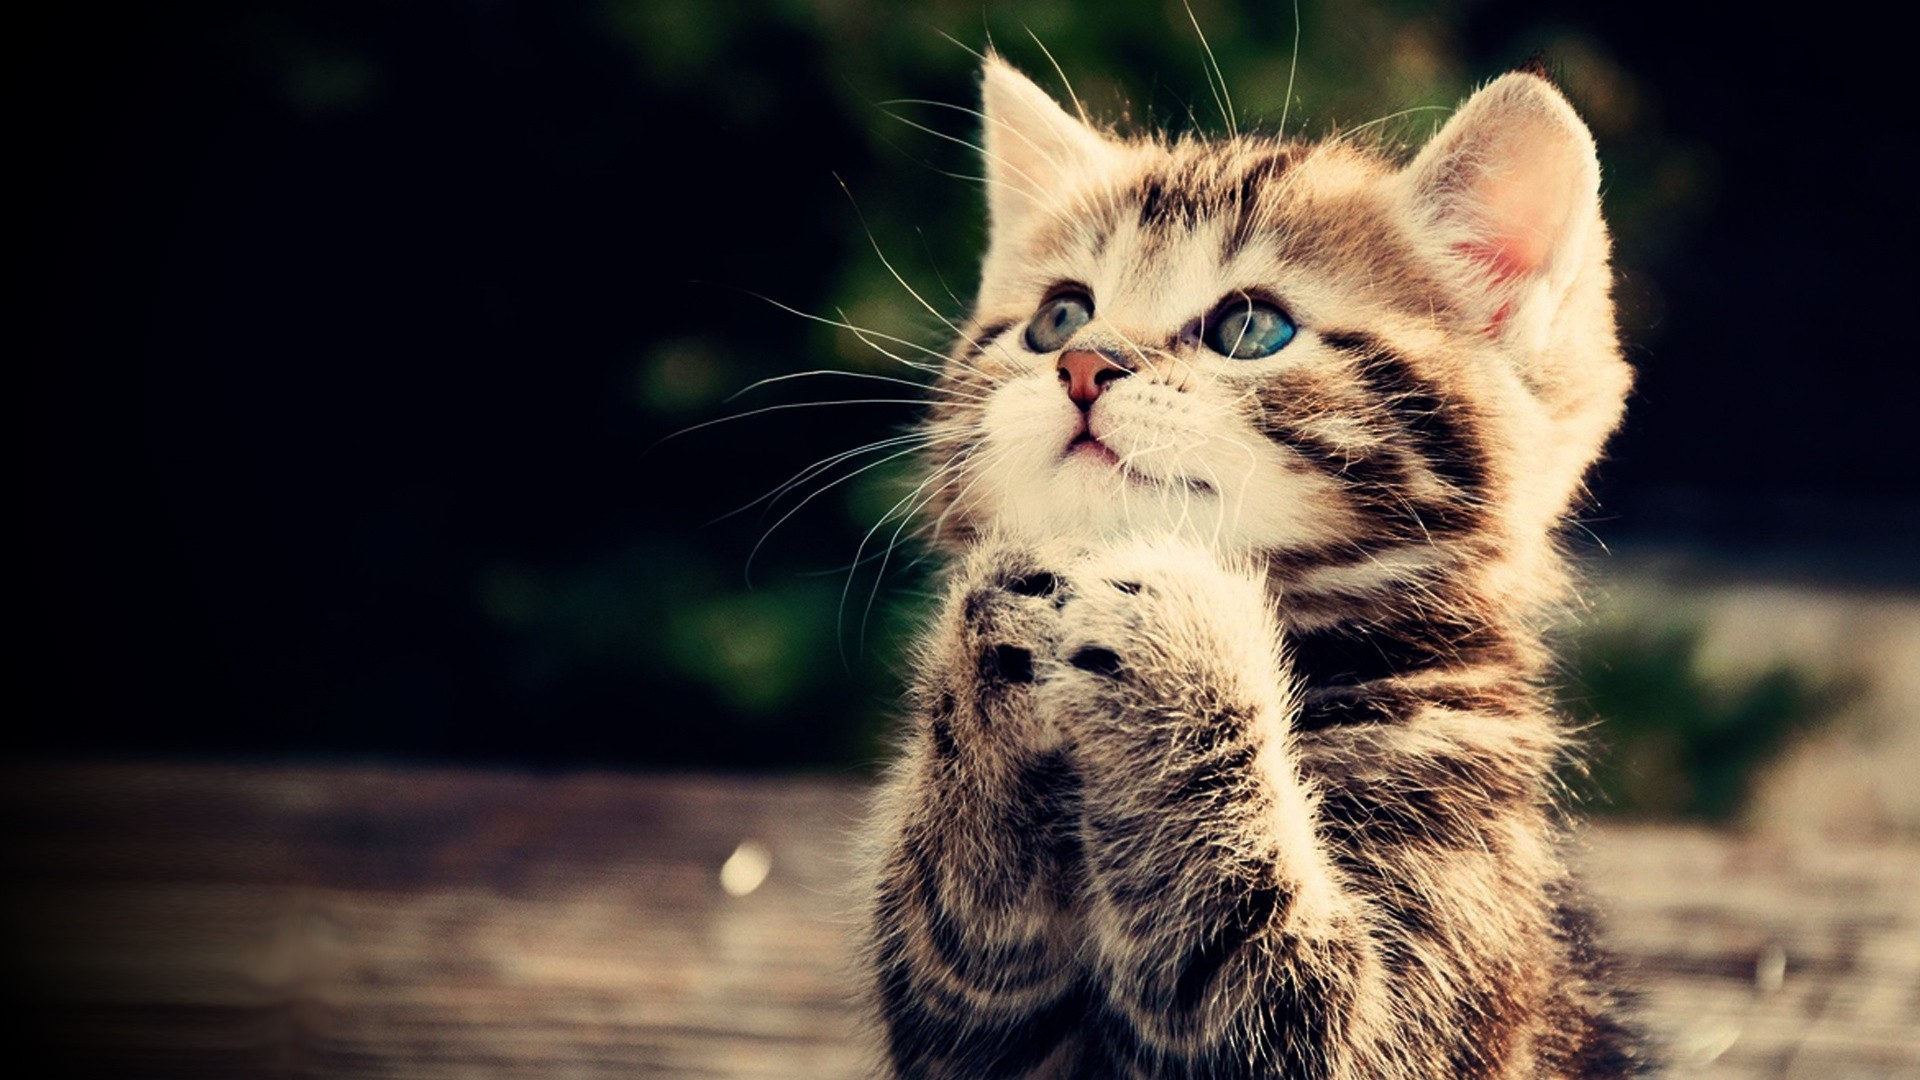 … free cat wallpapers mobile long wallpapers …